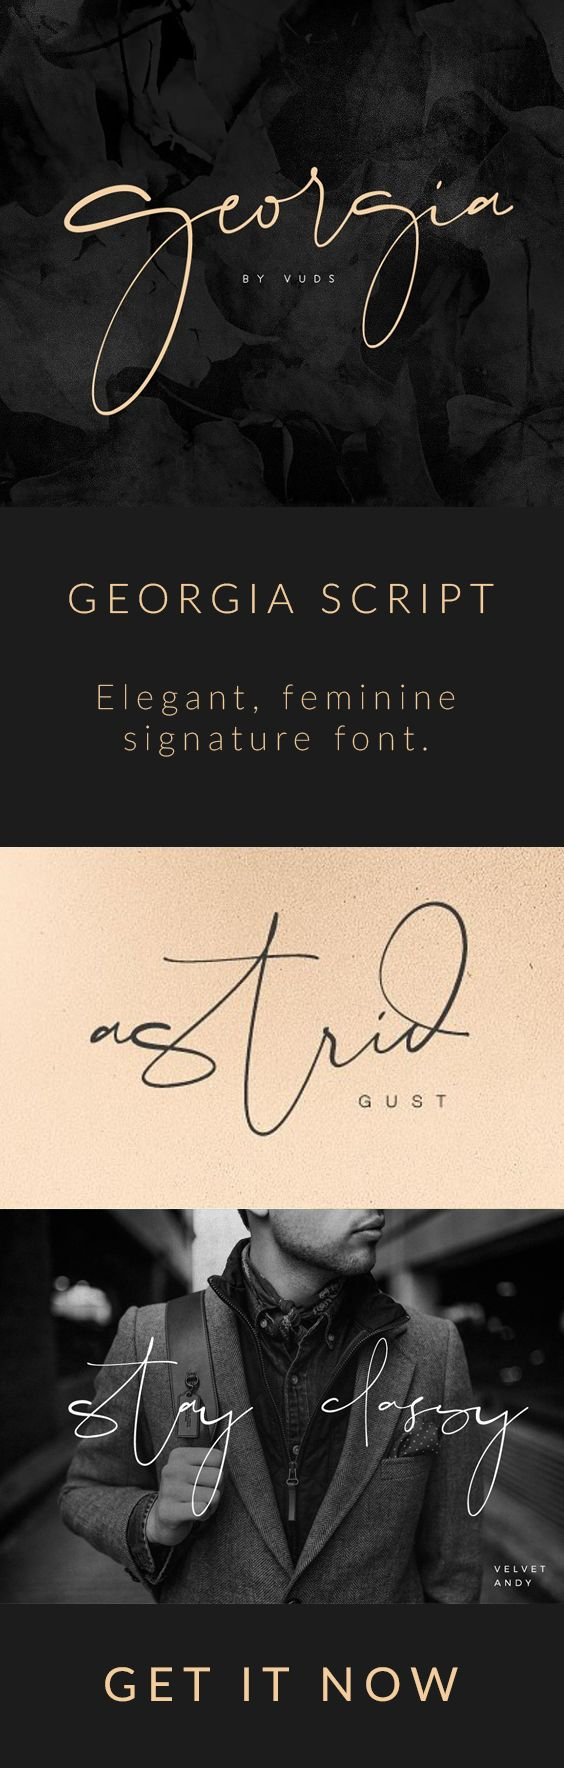 Georgia Script - Script Georgia Script - Script - 1 Georgia Script - Script - 2 Georgia Script - Script - 3 Georgia Script - Script - 4 Georgia Script - Script - 5 Georgia Script - Script - 6 Georgia Script - Script - 7 Georgia Script is modern feminine font, every single letters have been carefully crafted to make your text looks beautiful. With modern script logo, watermark, quotes, blog header, poster, wedding. #font #script #signature